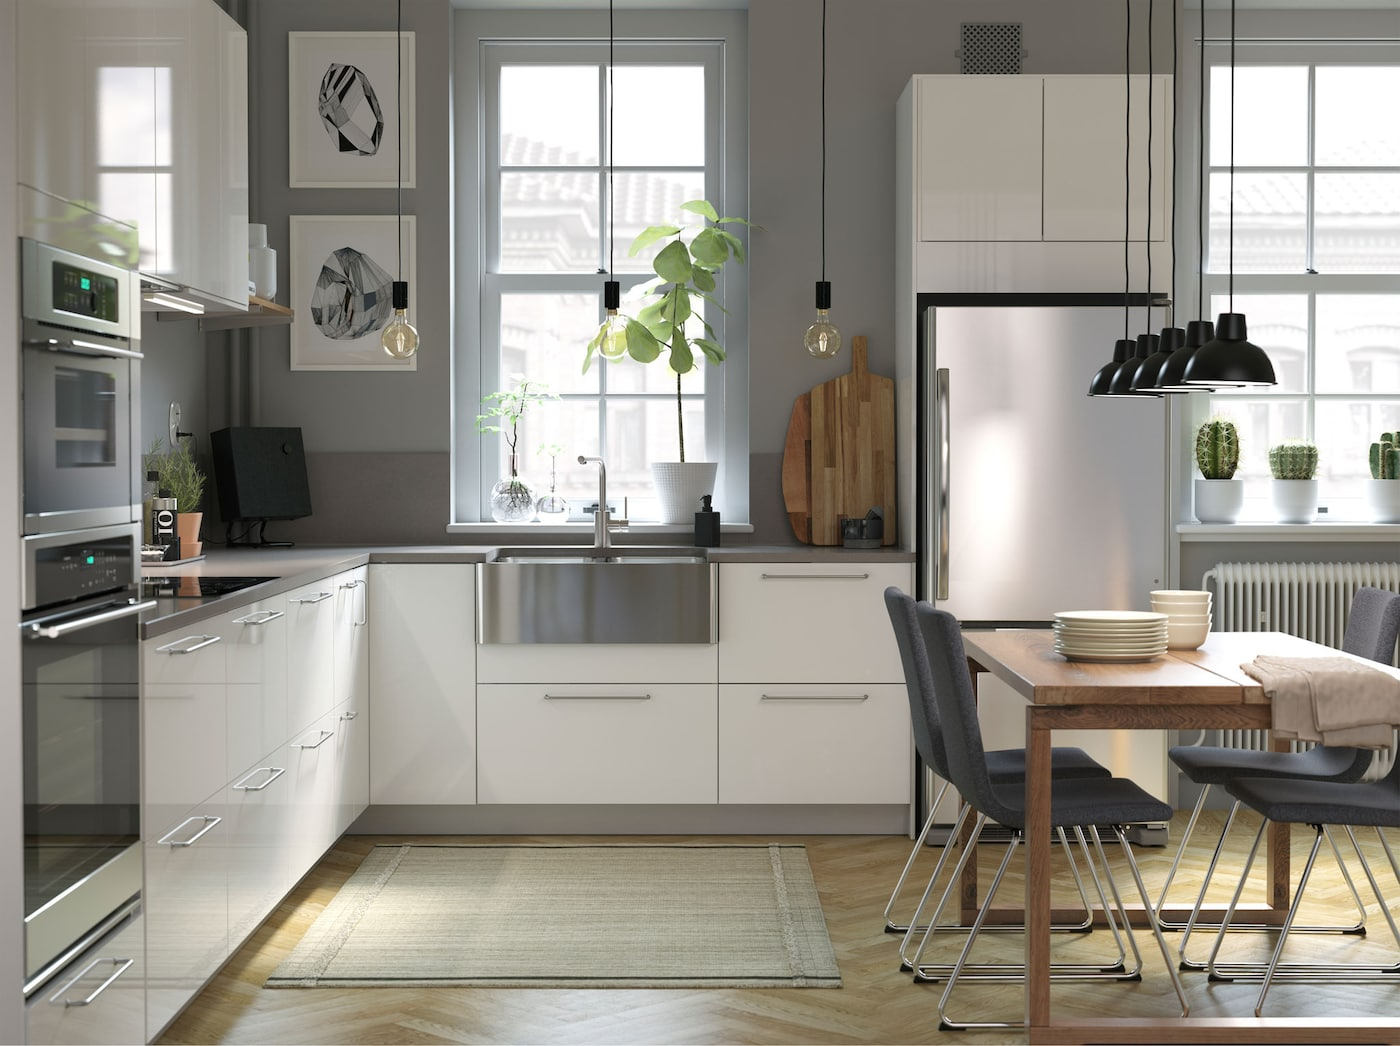 IKEA inspiration inspiration Kitchen Kitchen IKEA Kitchen IKEA inspiration IKEA inspiration inspiration Kitchen Kitchen CroeWdBx